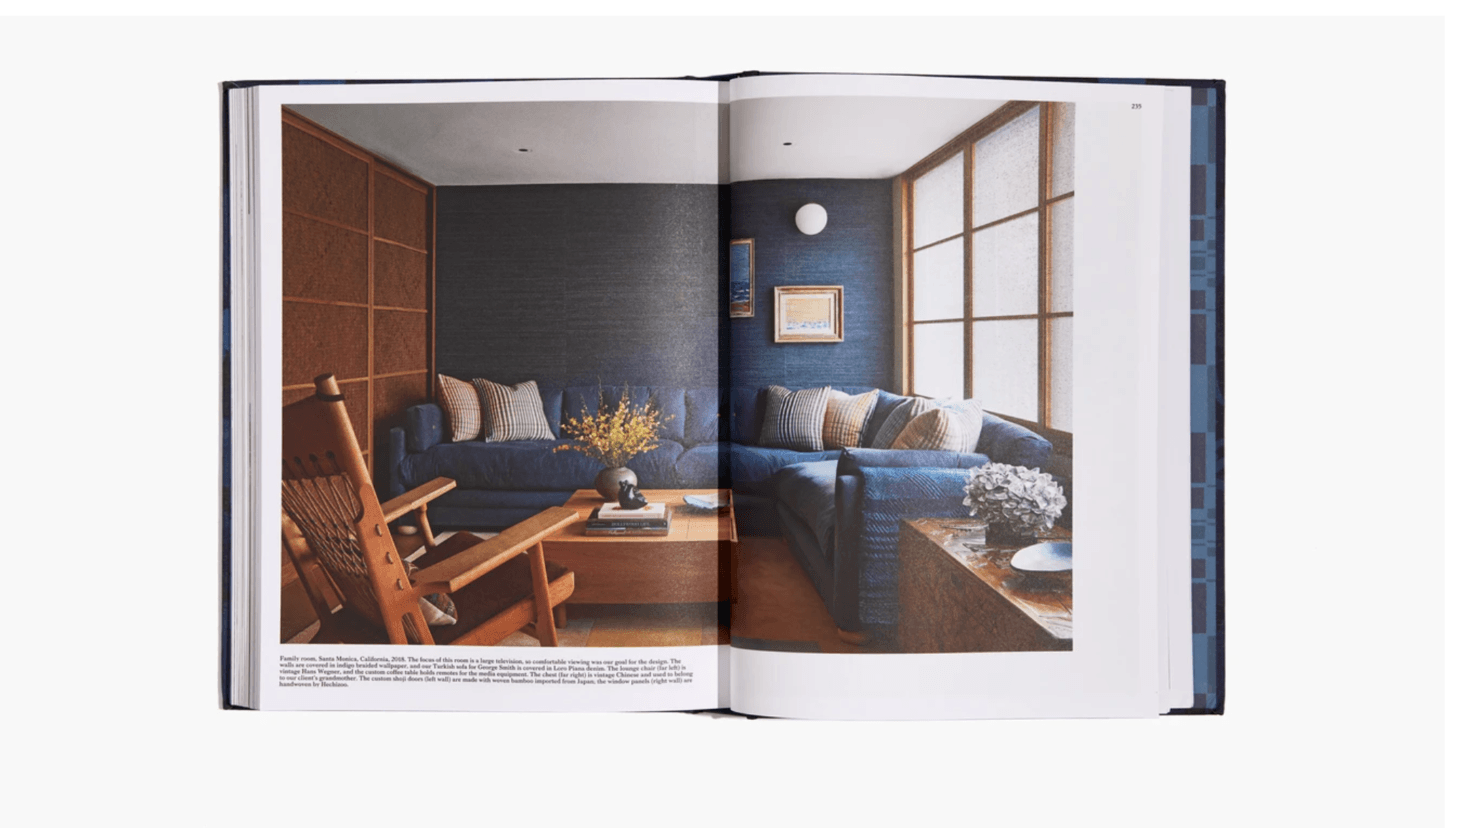 Commune: A Love Letter to California, by Roman Alonso and Steven Johanknecht of the much-celebrated LA-based design firm.